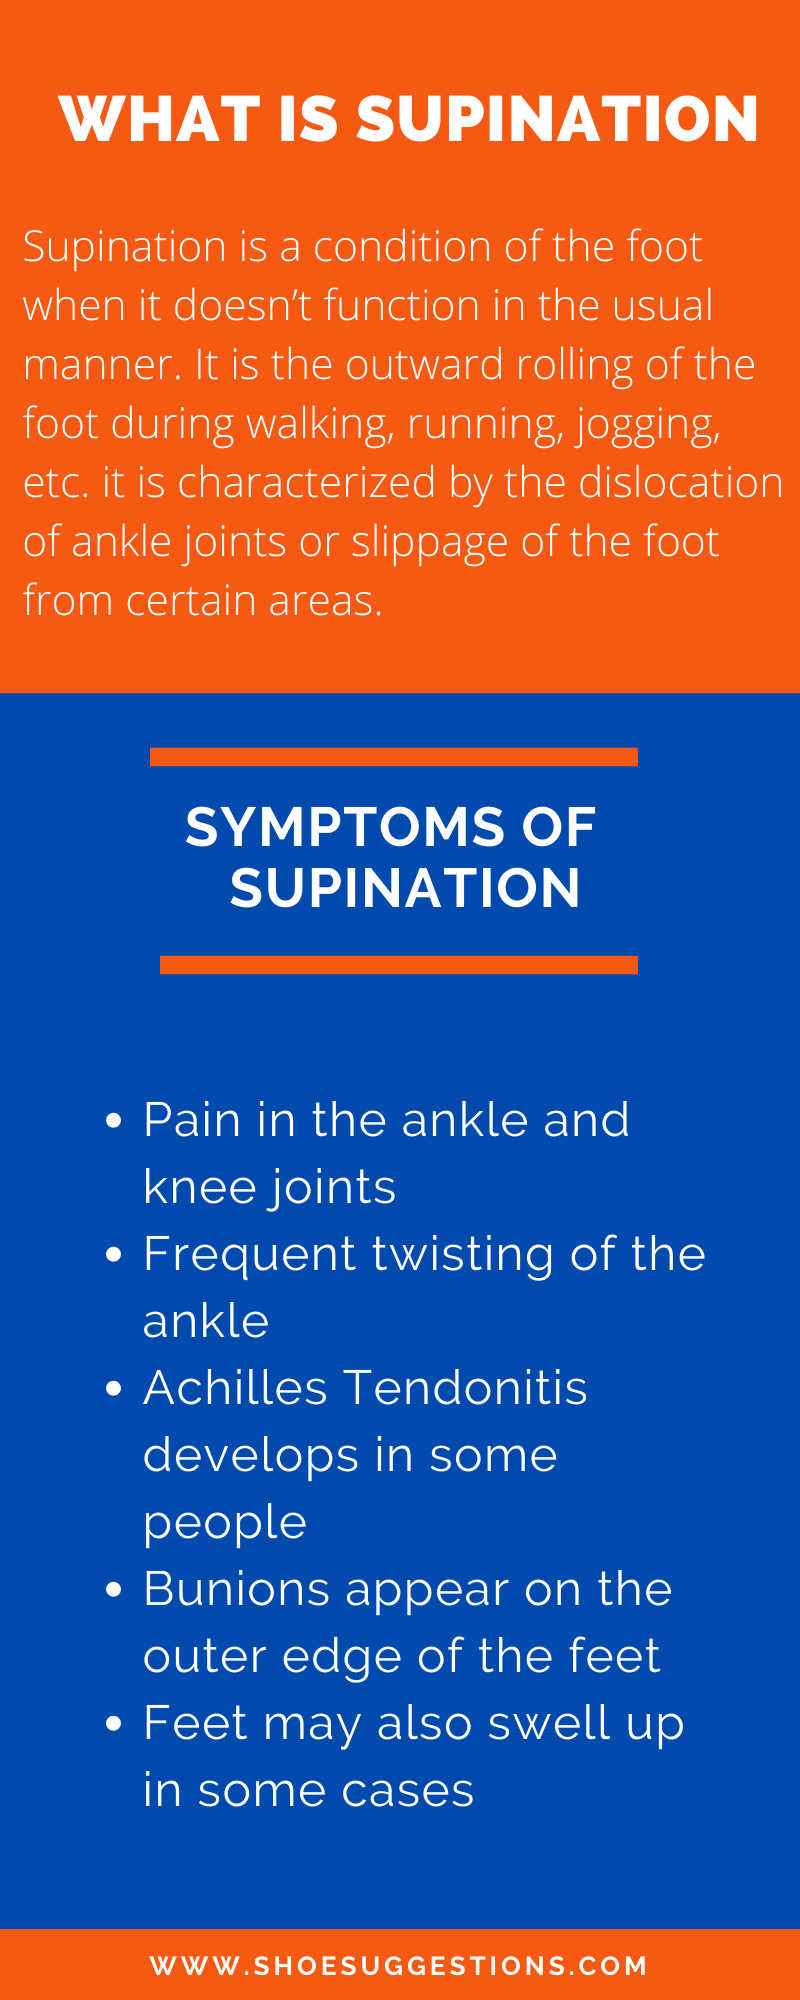 Symptoms of supination